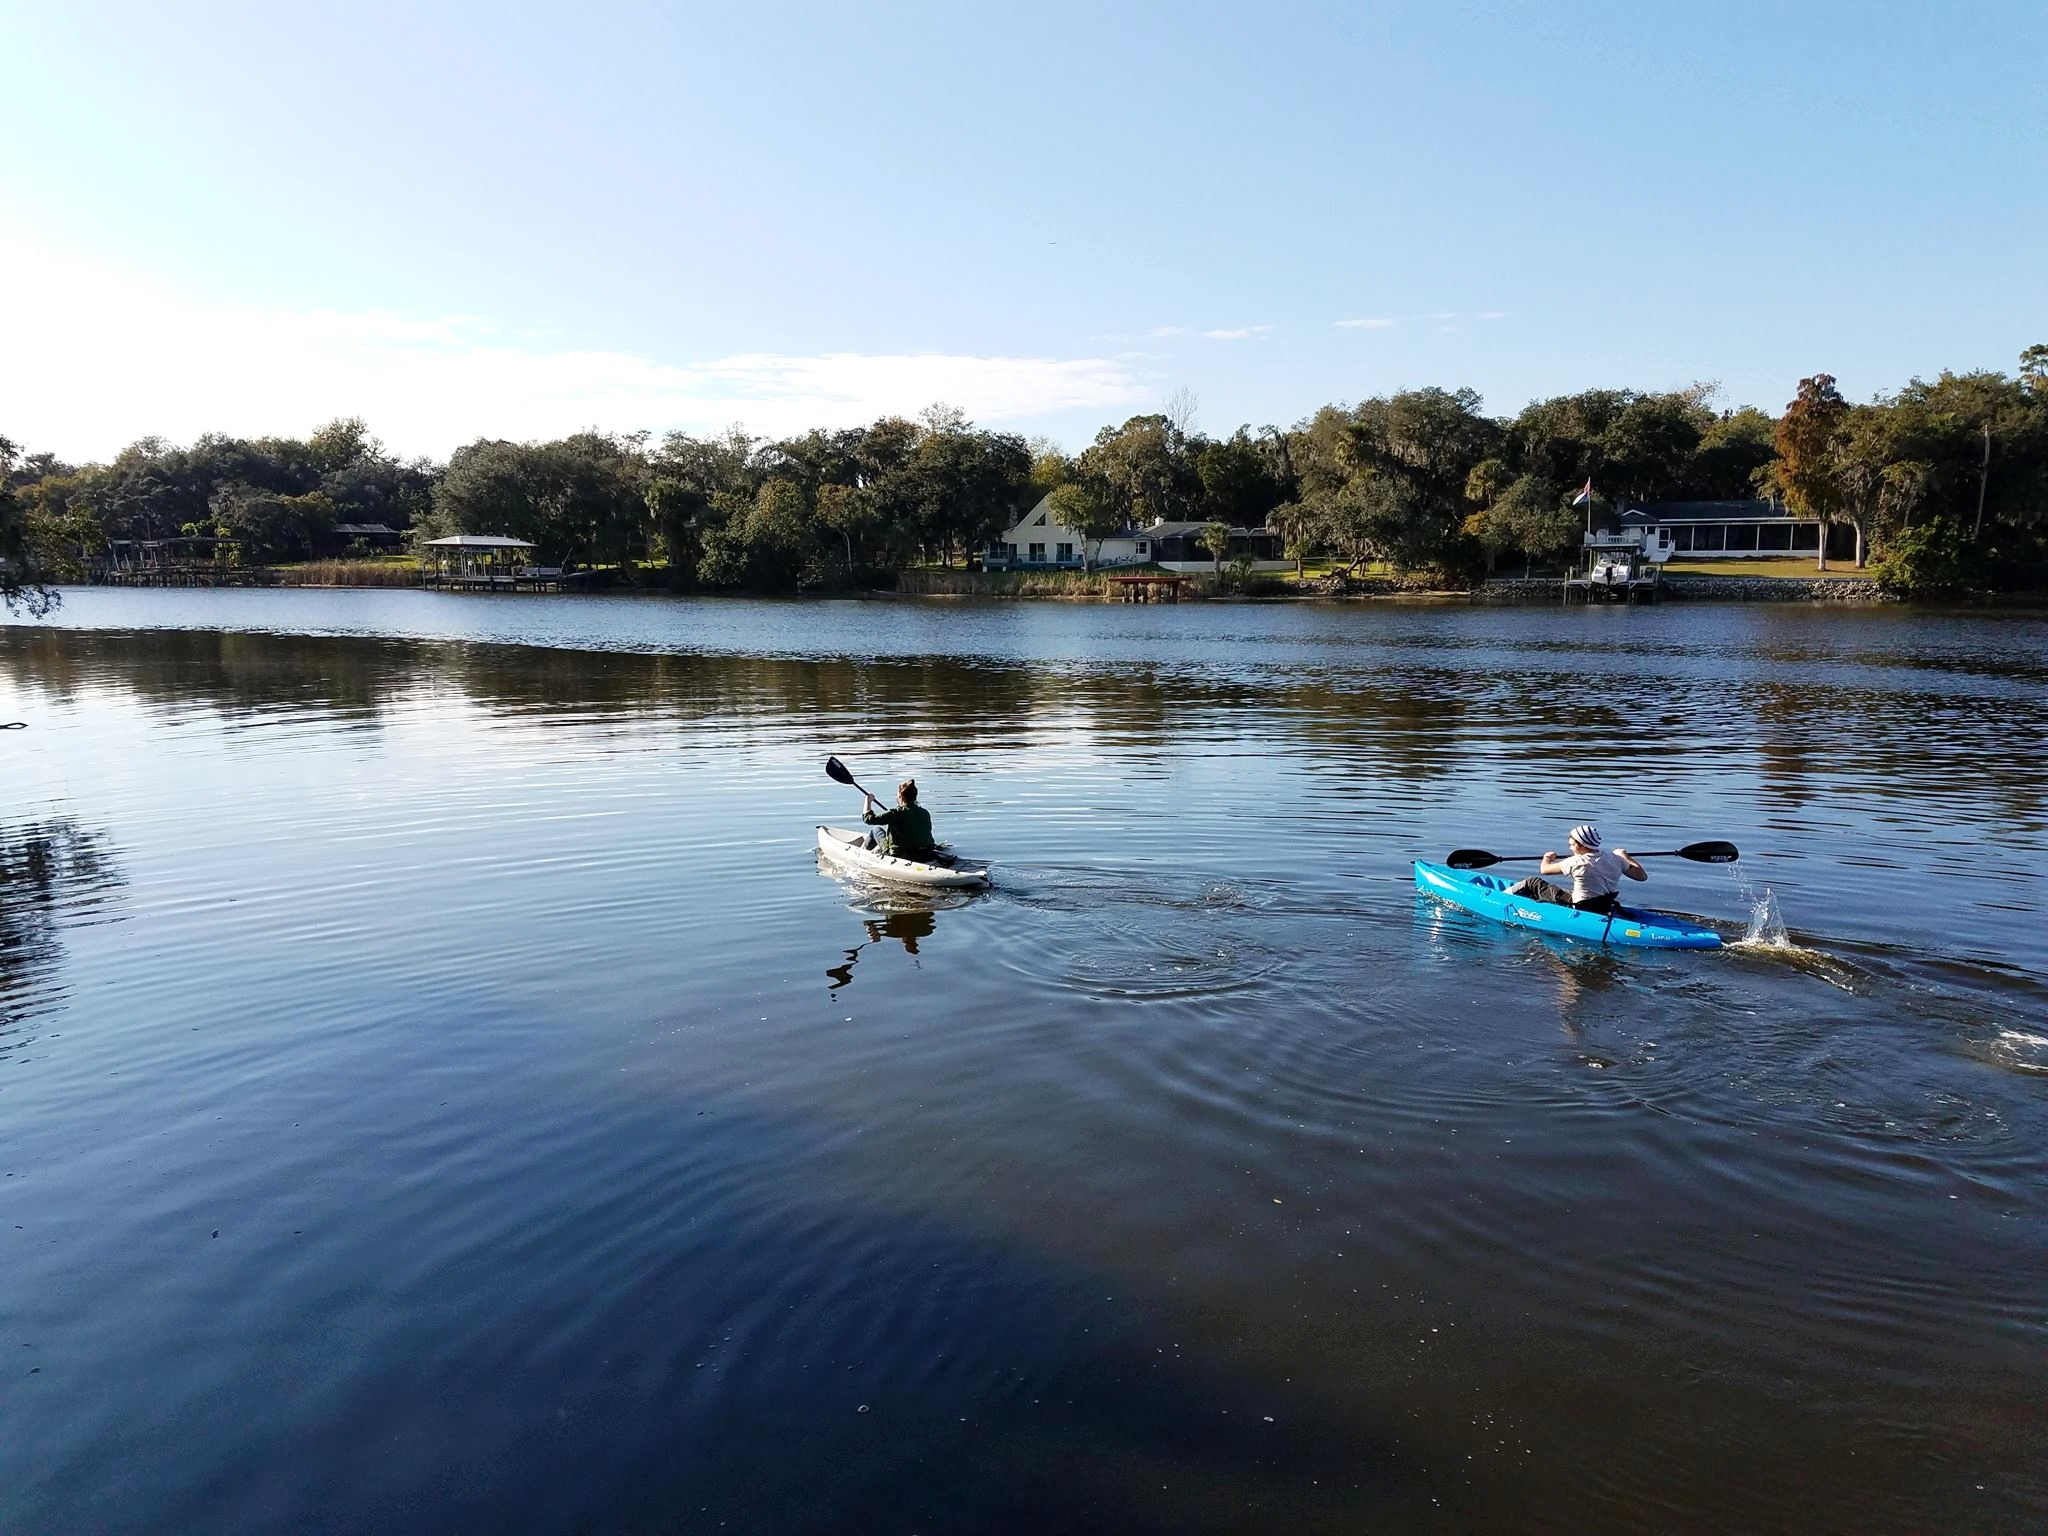 Family enjoying the kayaks on the Alafia River!